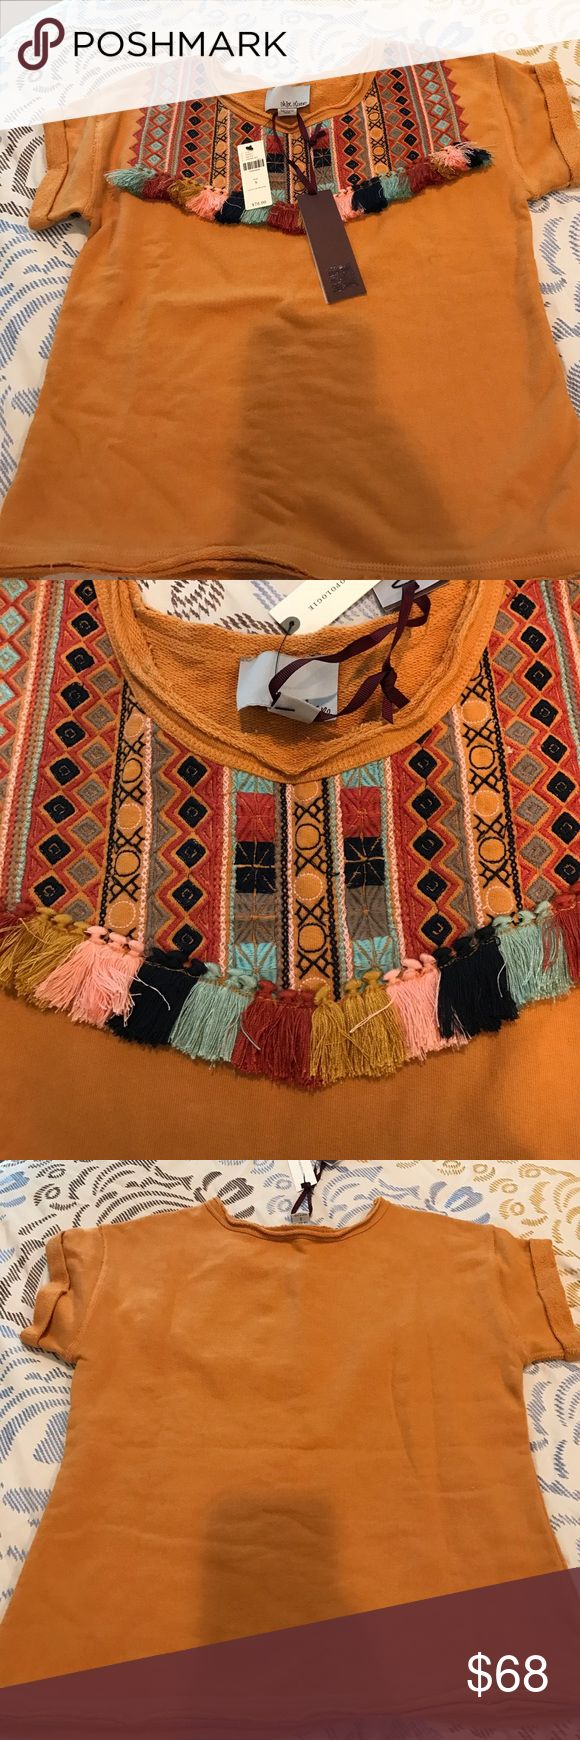 Anthropologie top Beautiful and brand-new embroidered top with fringe tassels. This top retailed for over $78! 100% cotton. No trades. Anthropologie Tops